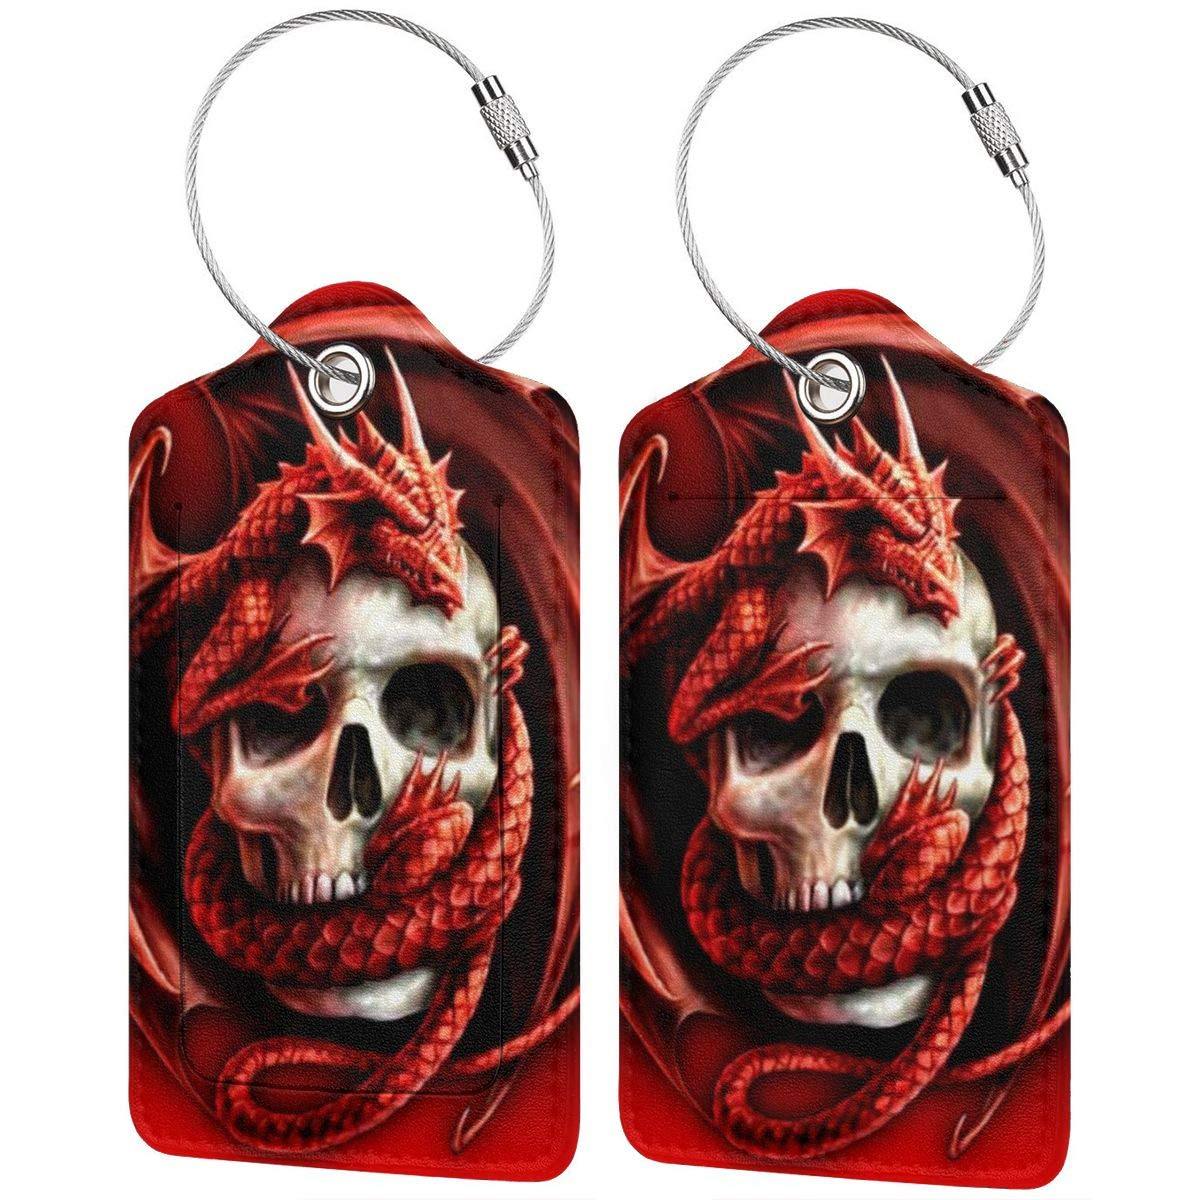 Red Dragon And Skull Luggage Tag Label Travel Bag Label With Privacy Cover Luggage Tag Leather Personalized Suitcase Tag Travel Accessories